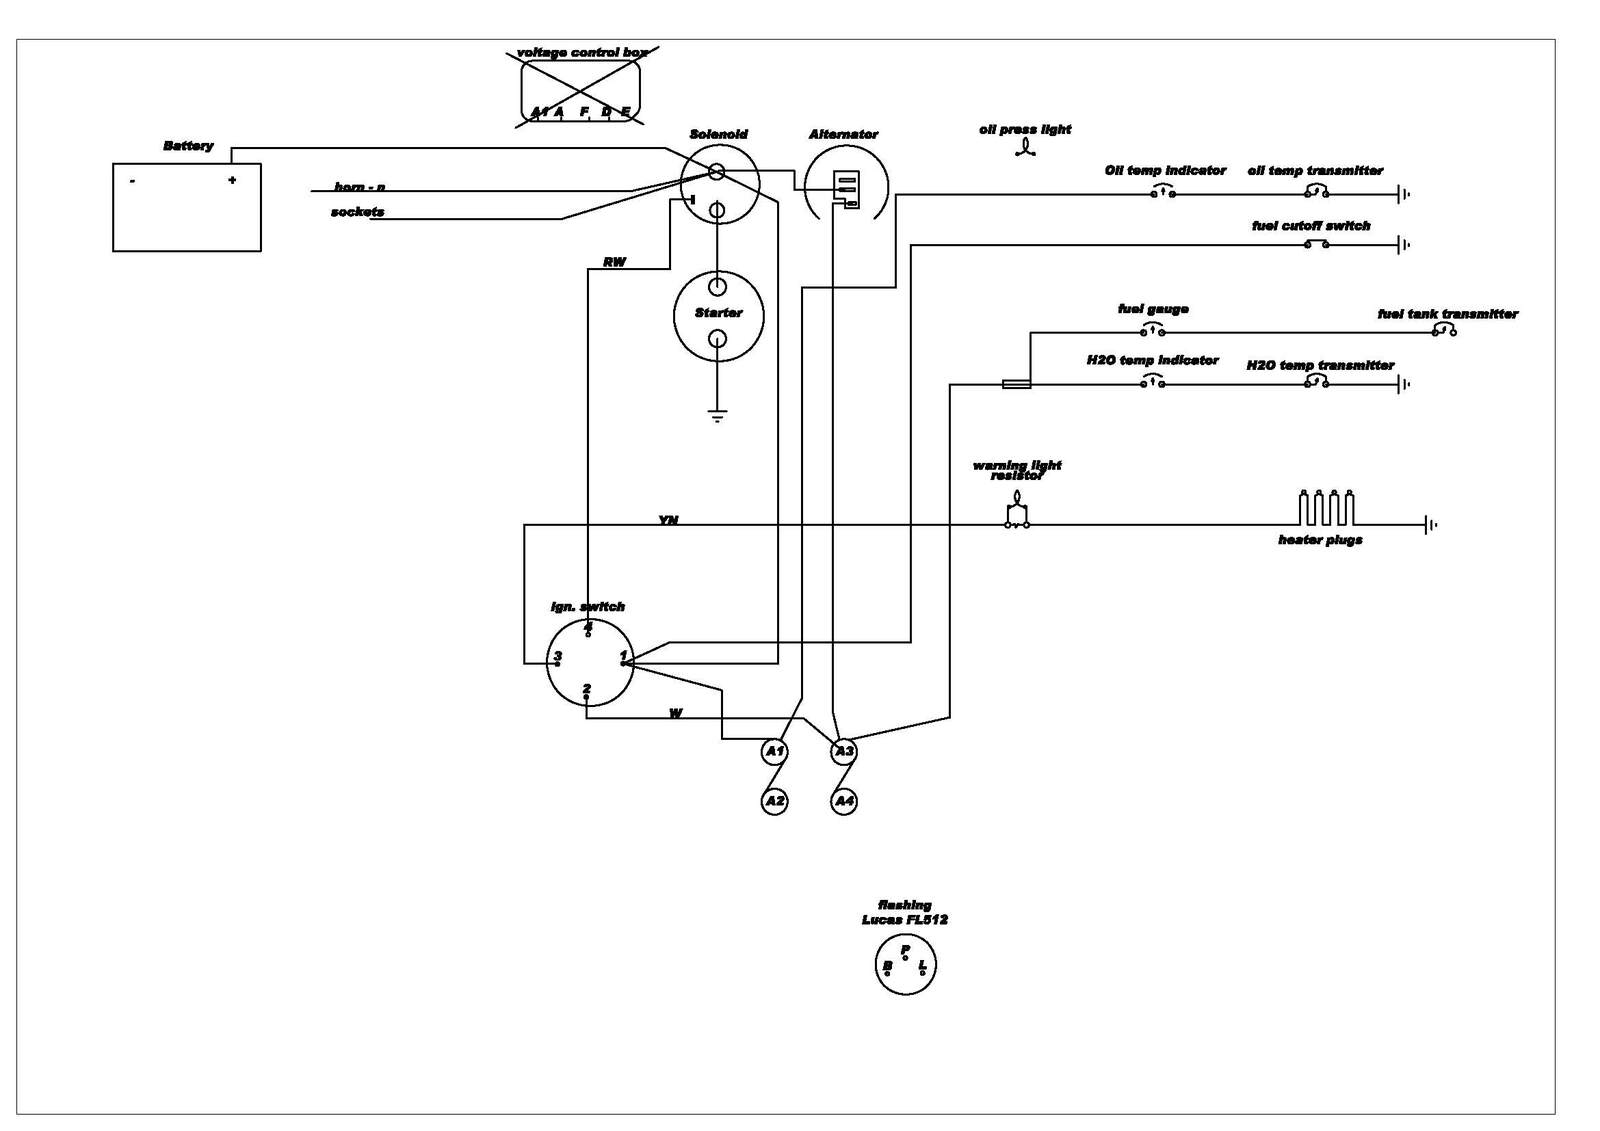 series 2a wiring challenge landyzone land rover forum land rover series 3 wiring loom diagram at bayanpartner.co